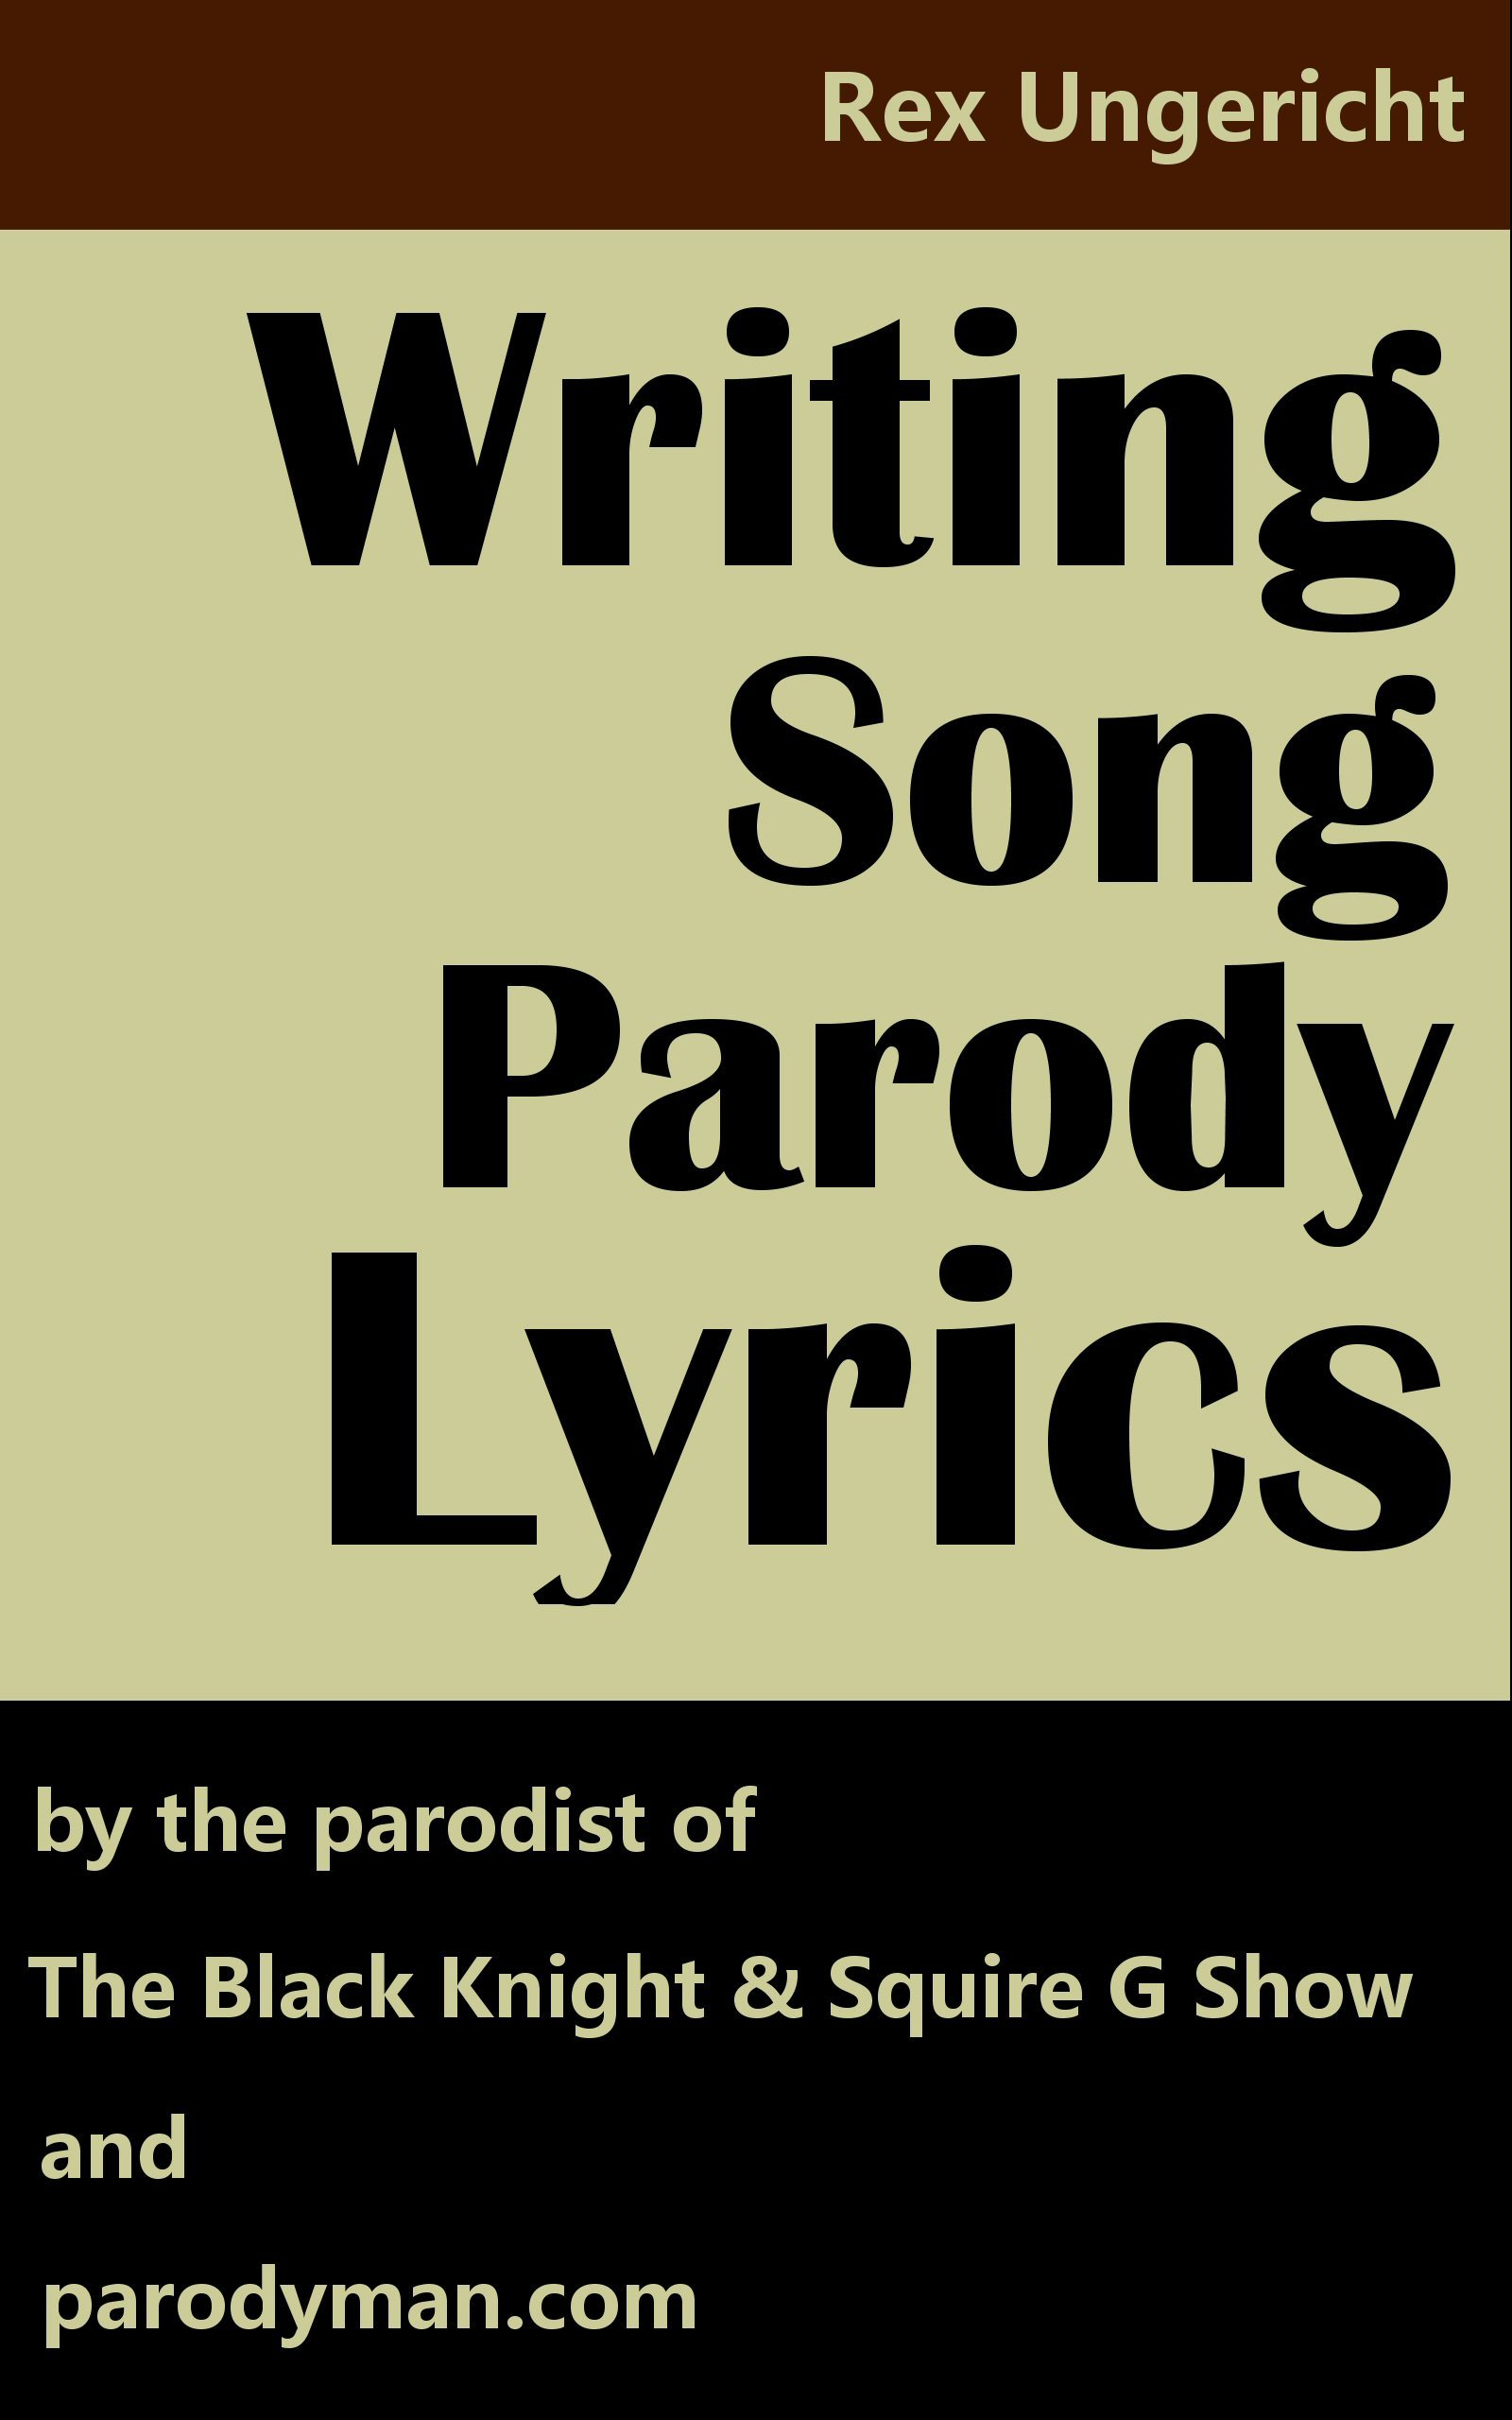 Writing Song Parody Lyrics